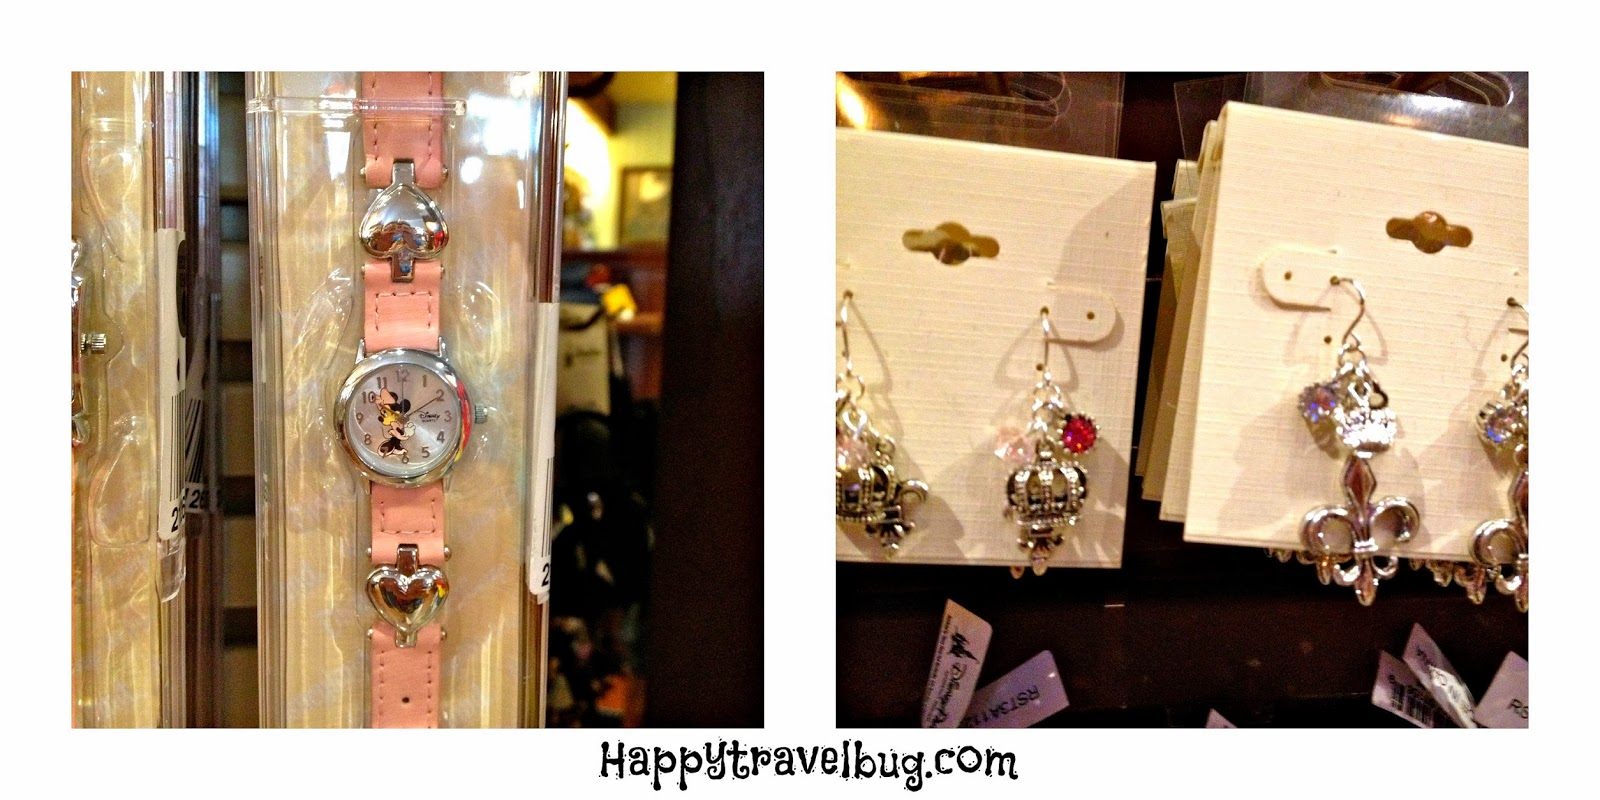 Disney watch and earrings